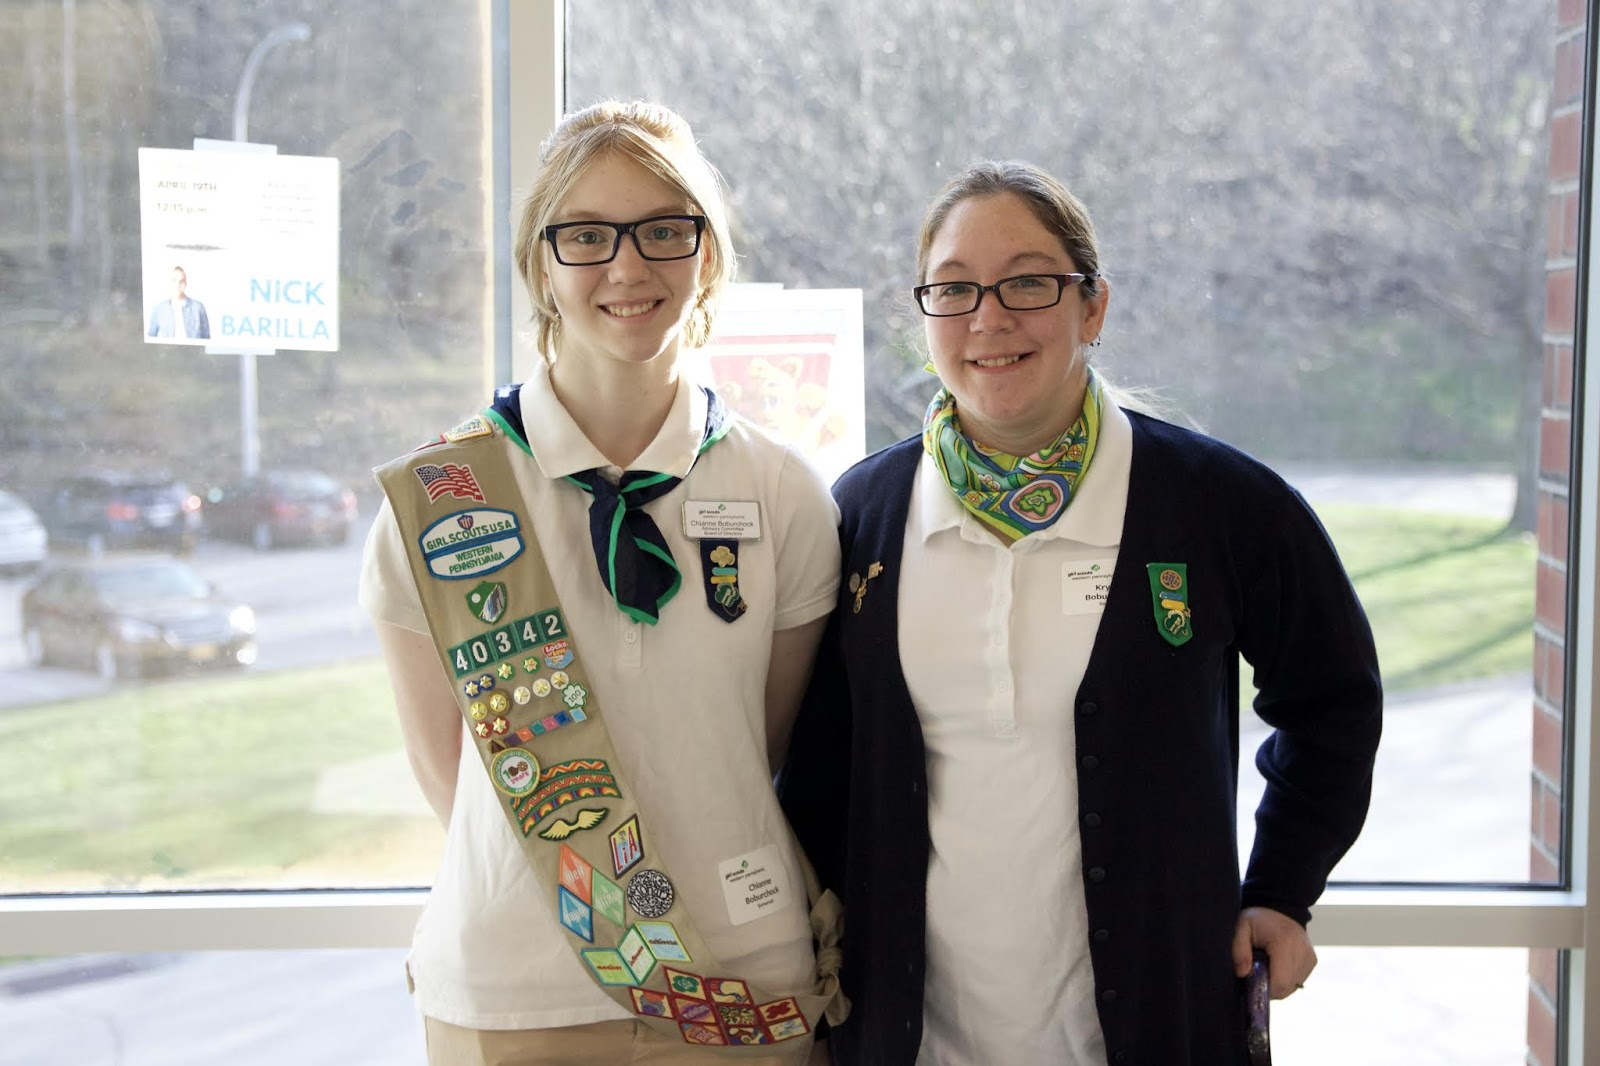 Girl scouts western pennsylvania new girl scout elected to chianne boburchock poses with her mother krystal boburchock at the girl scouts western pennsylvania gswpa annual meeting where chianne was elected to publicscrutiny Gallery